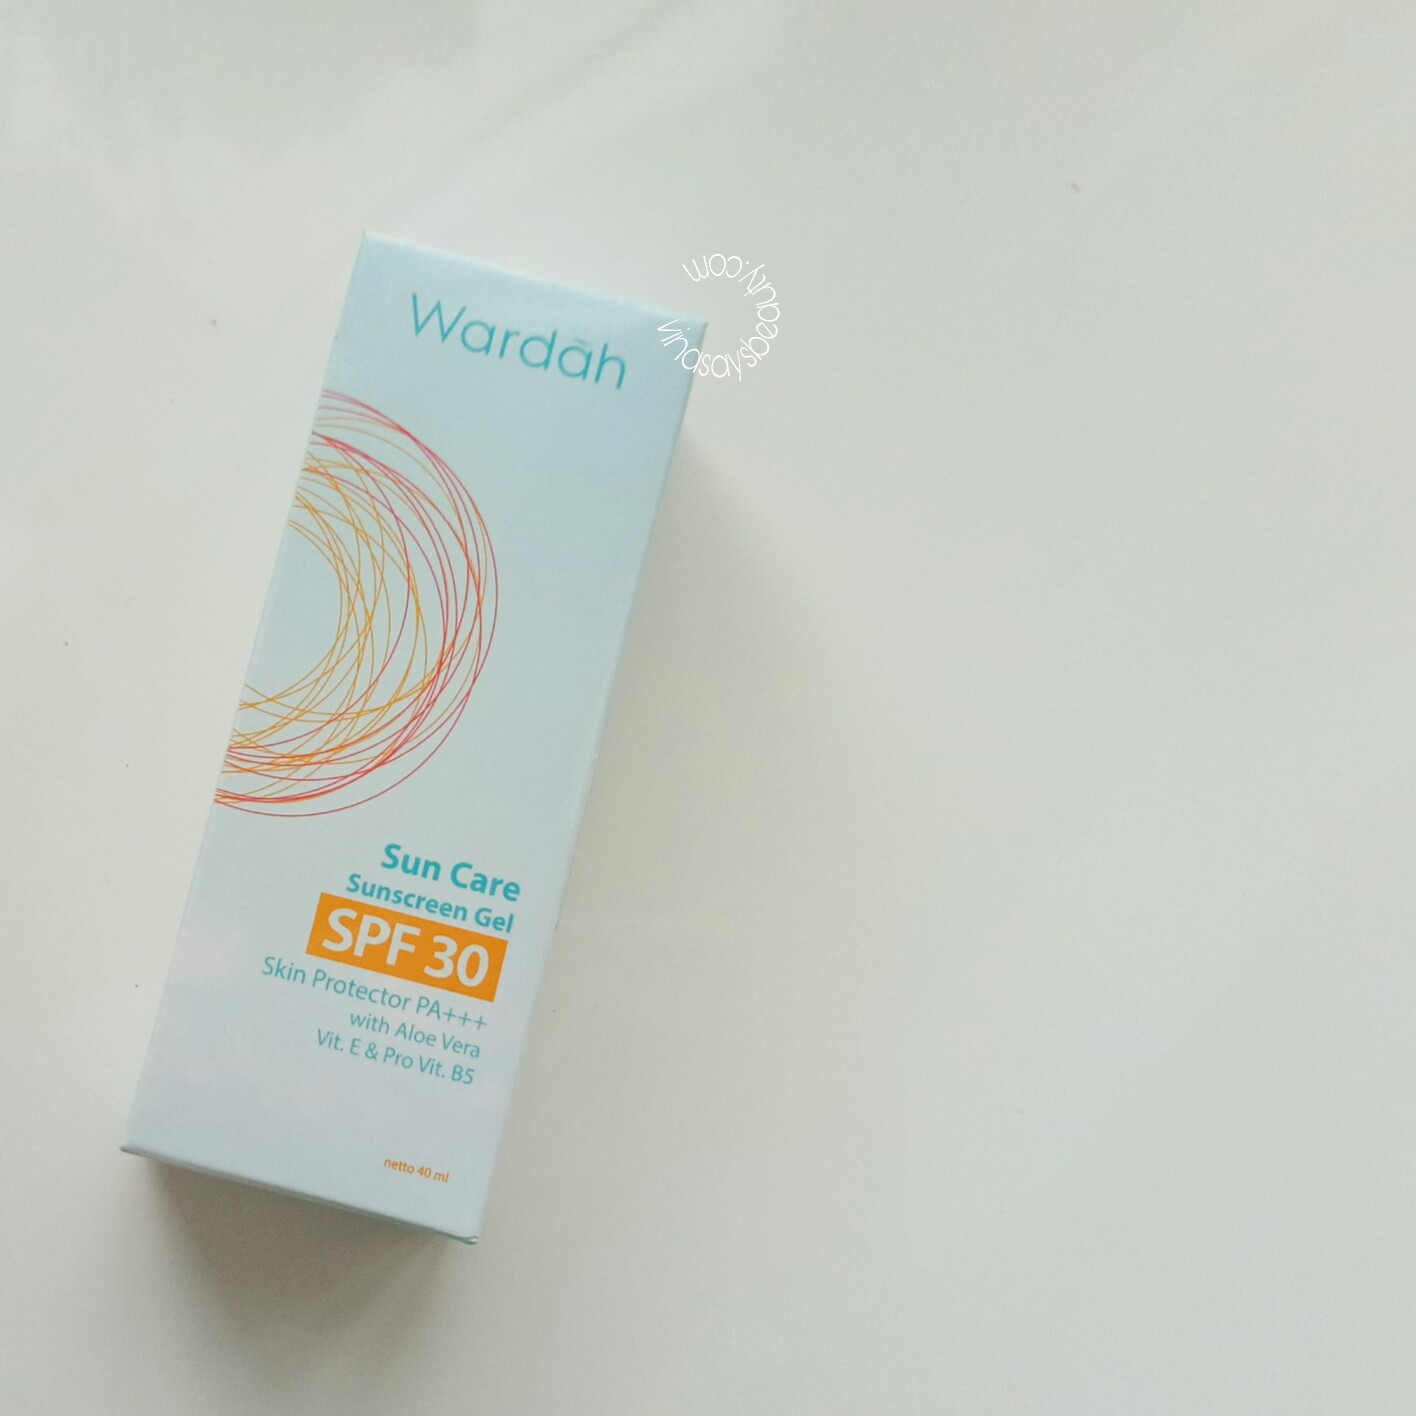 REVIEW WARDAH SUNSCREEN GEL SPF 30 PA